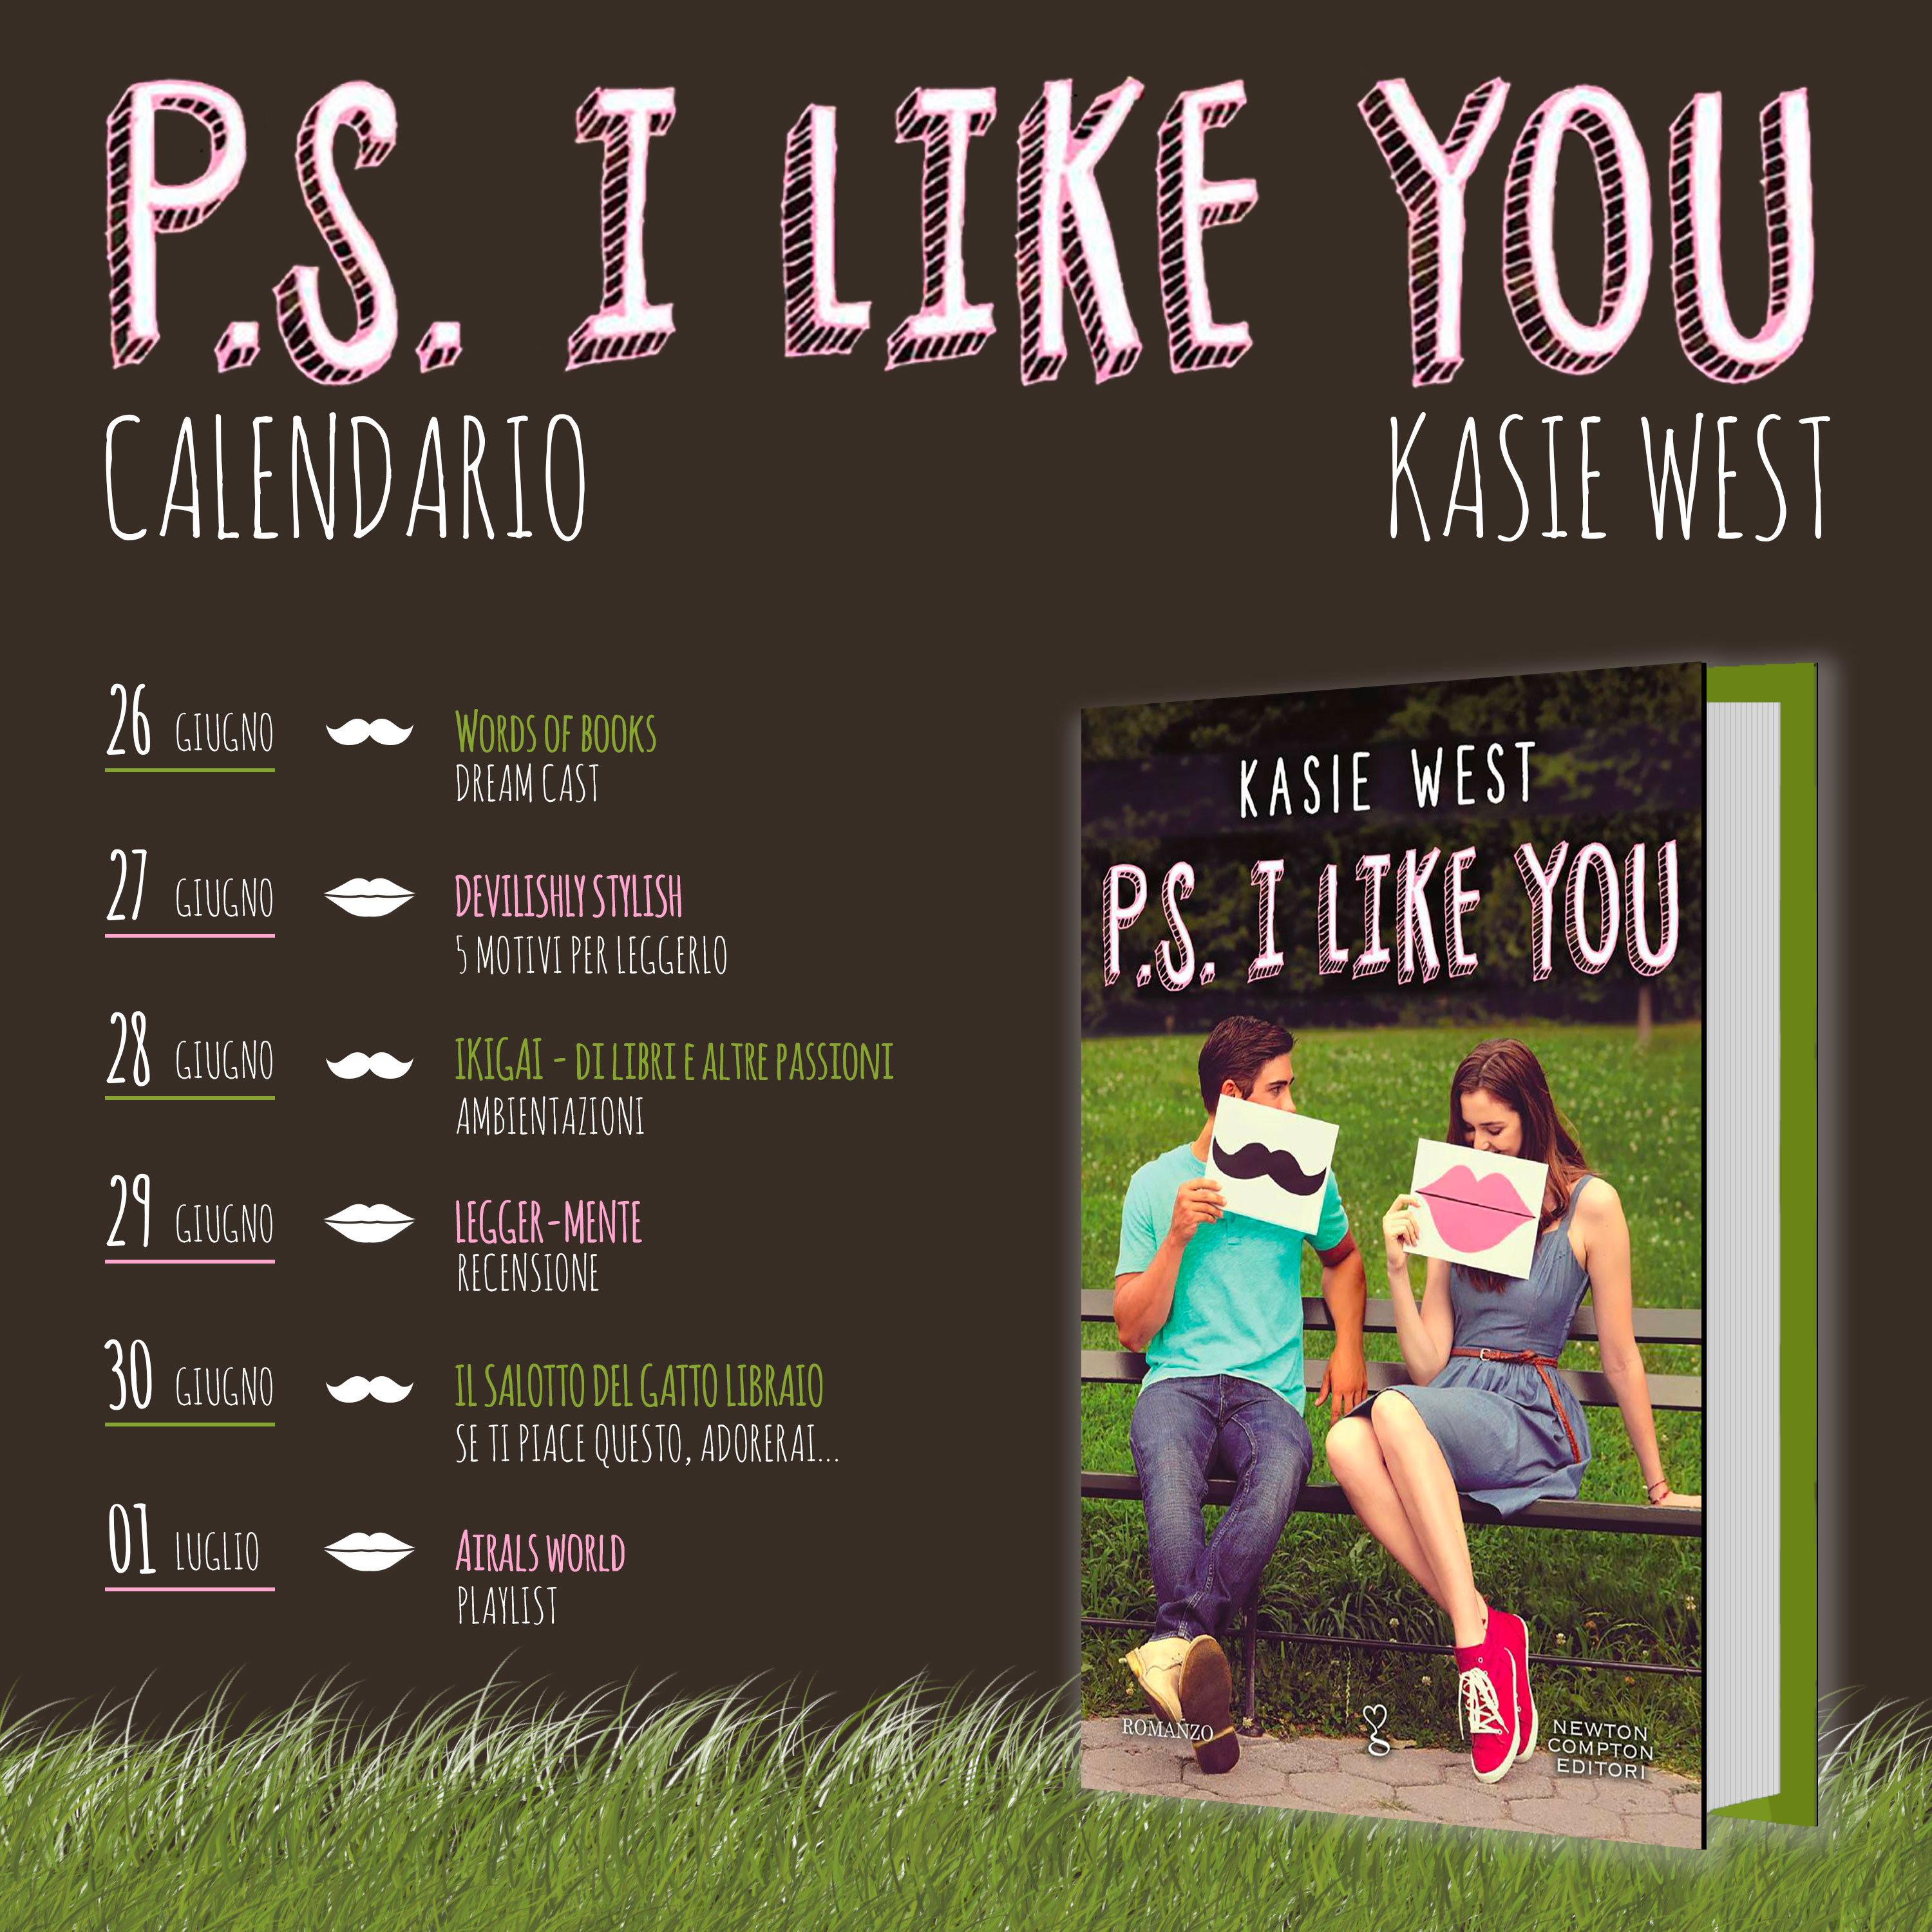 Calendario PS I like you